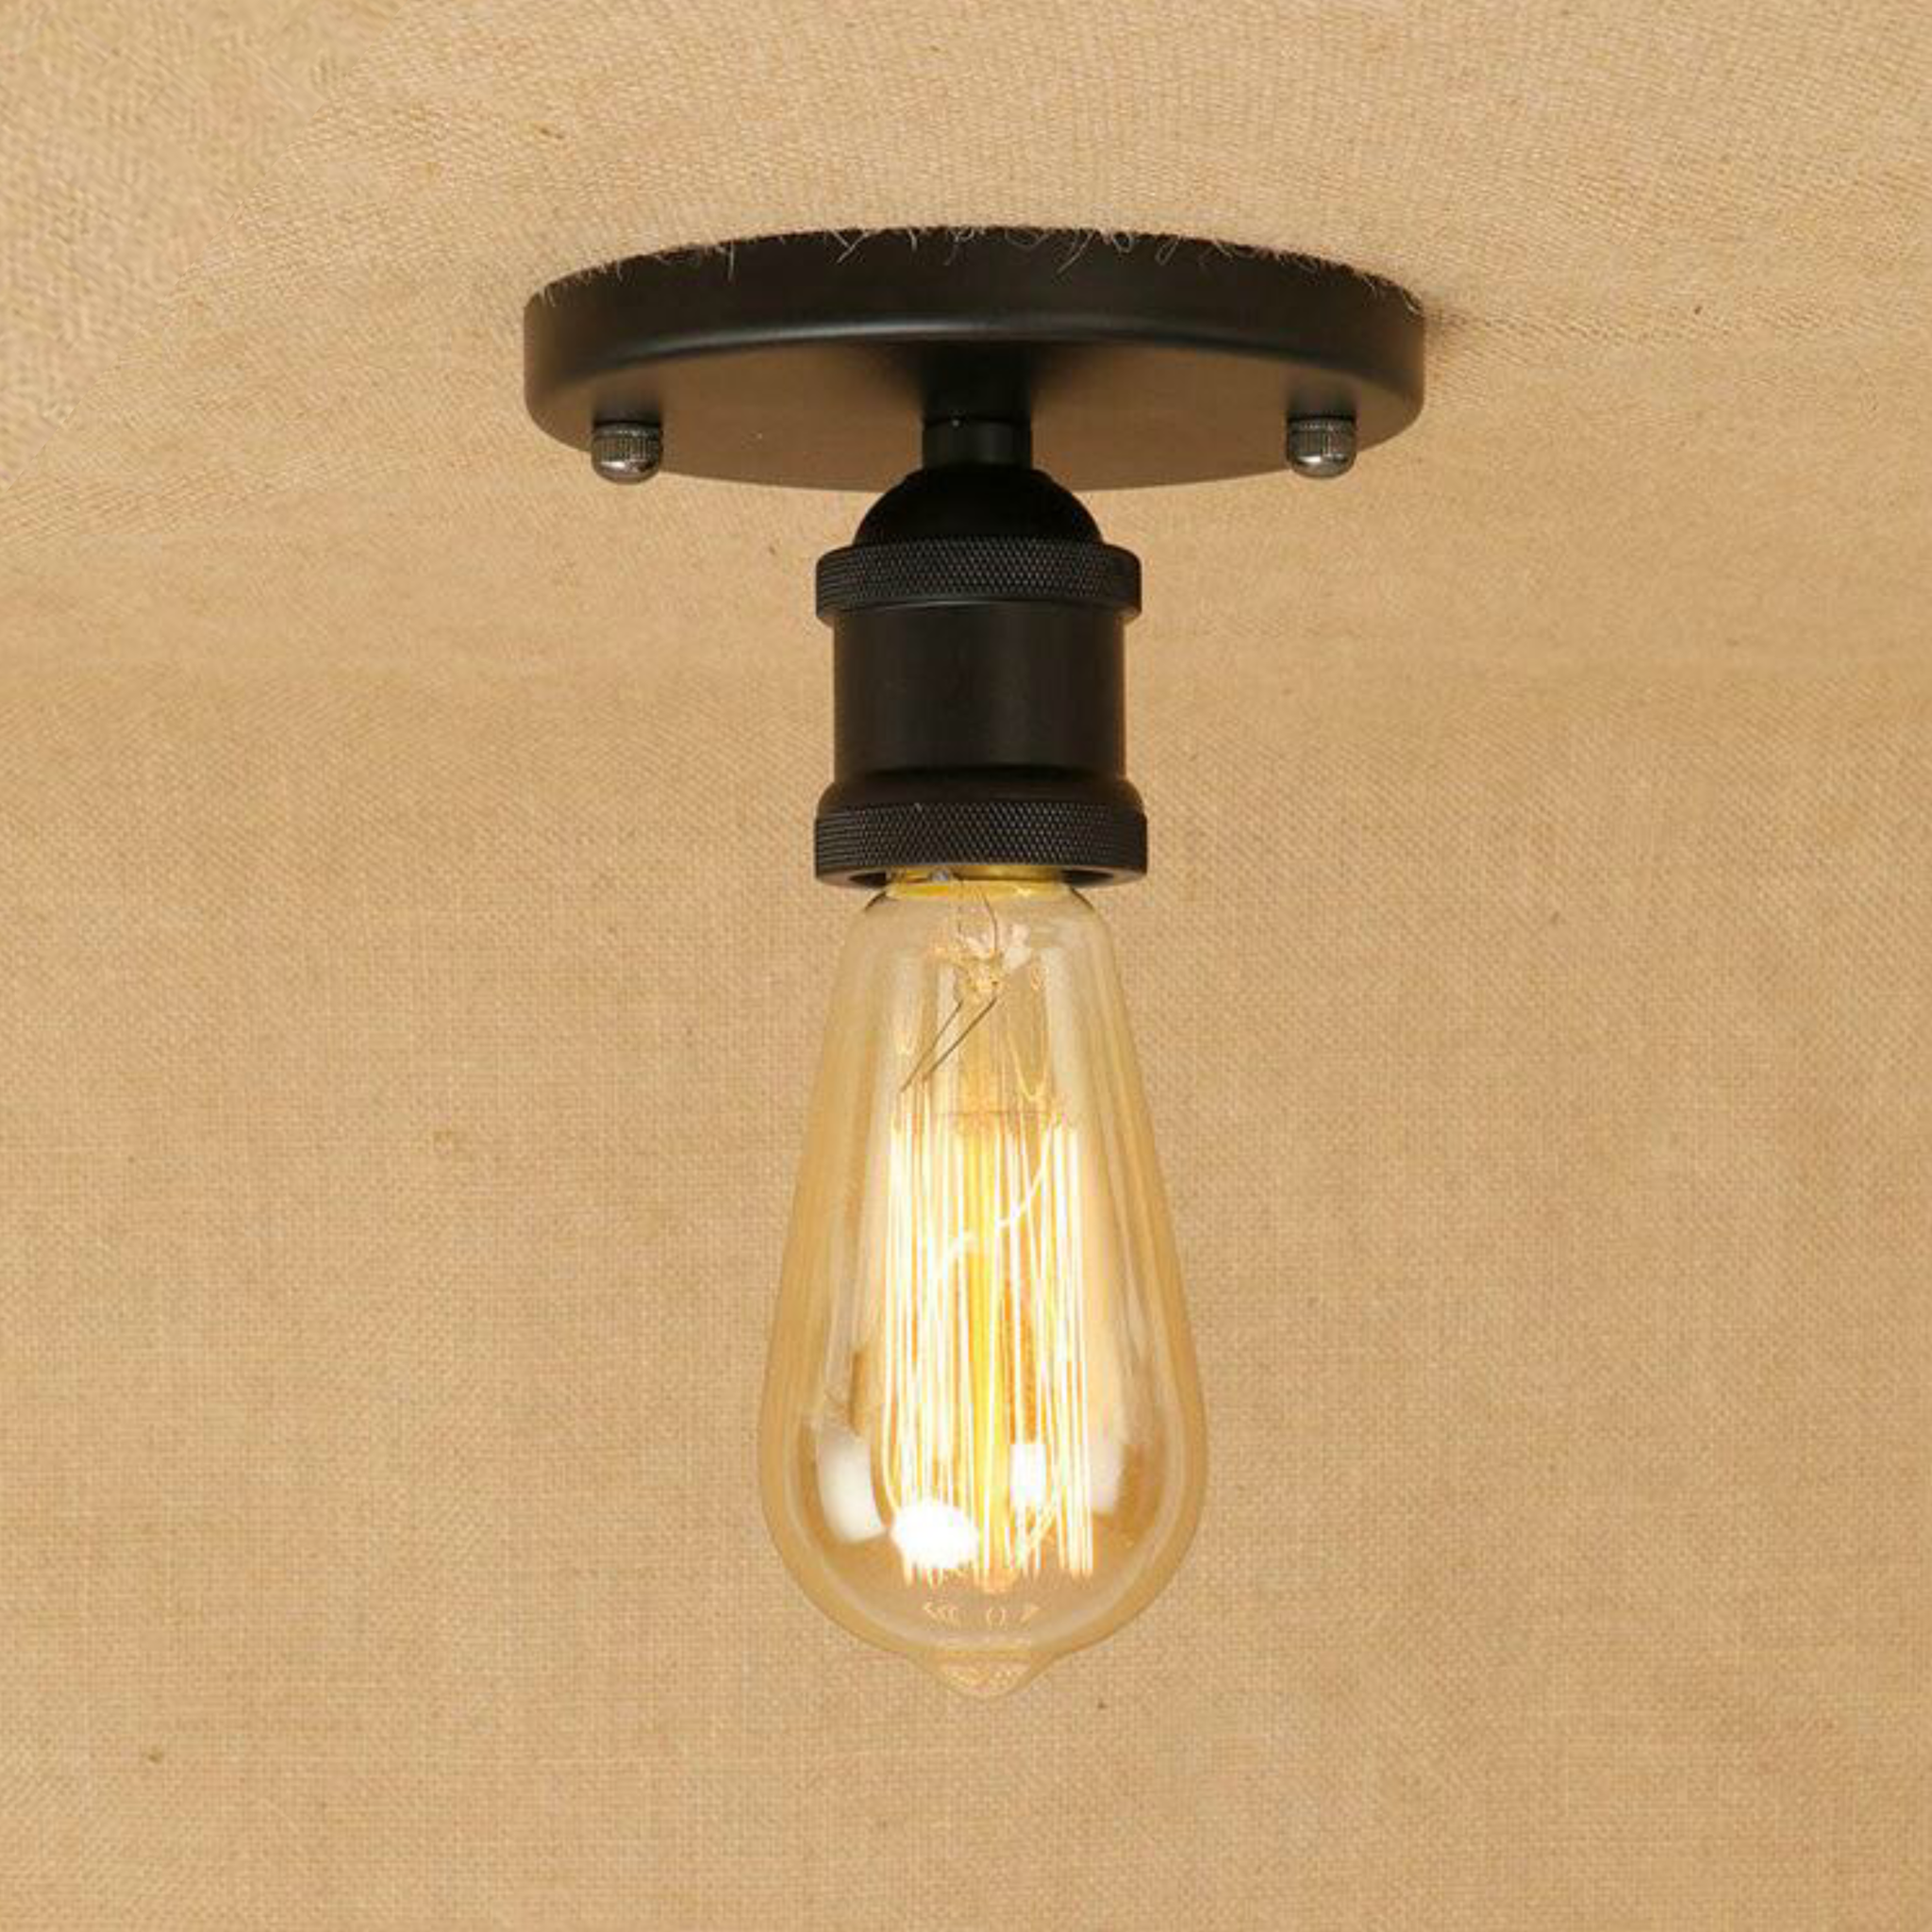 Vintage Industrial Ceiling Lights Lamparas De Techo Loft Style Retro Ceiling Lamp Fixtures Home Lighting Avize Luminaire